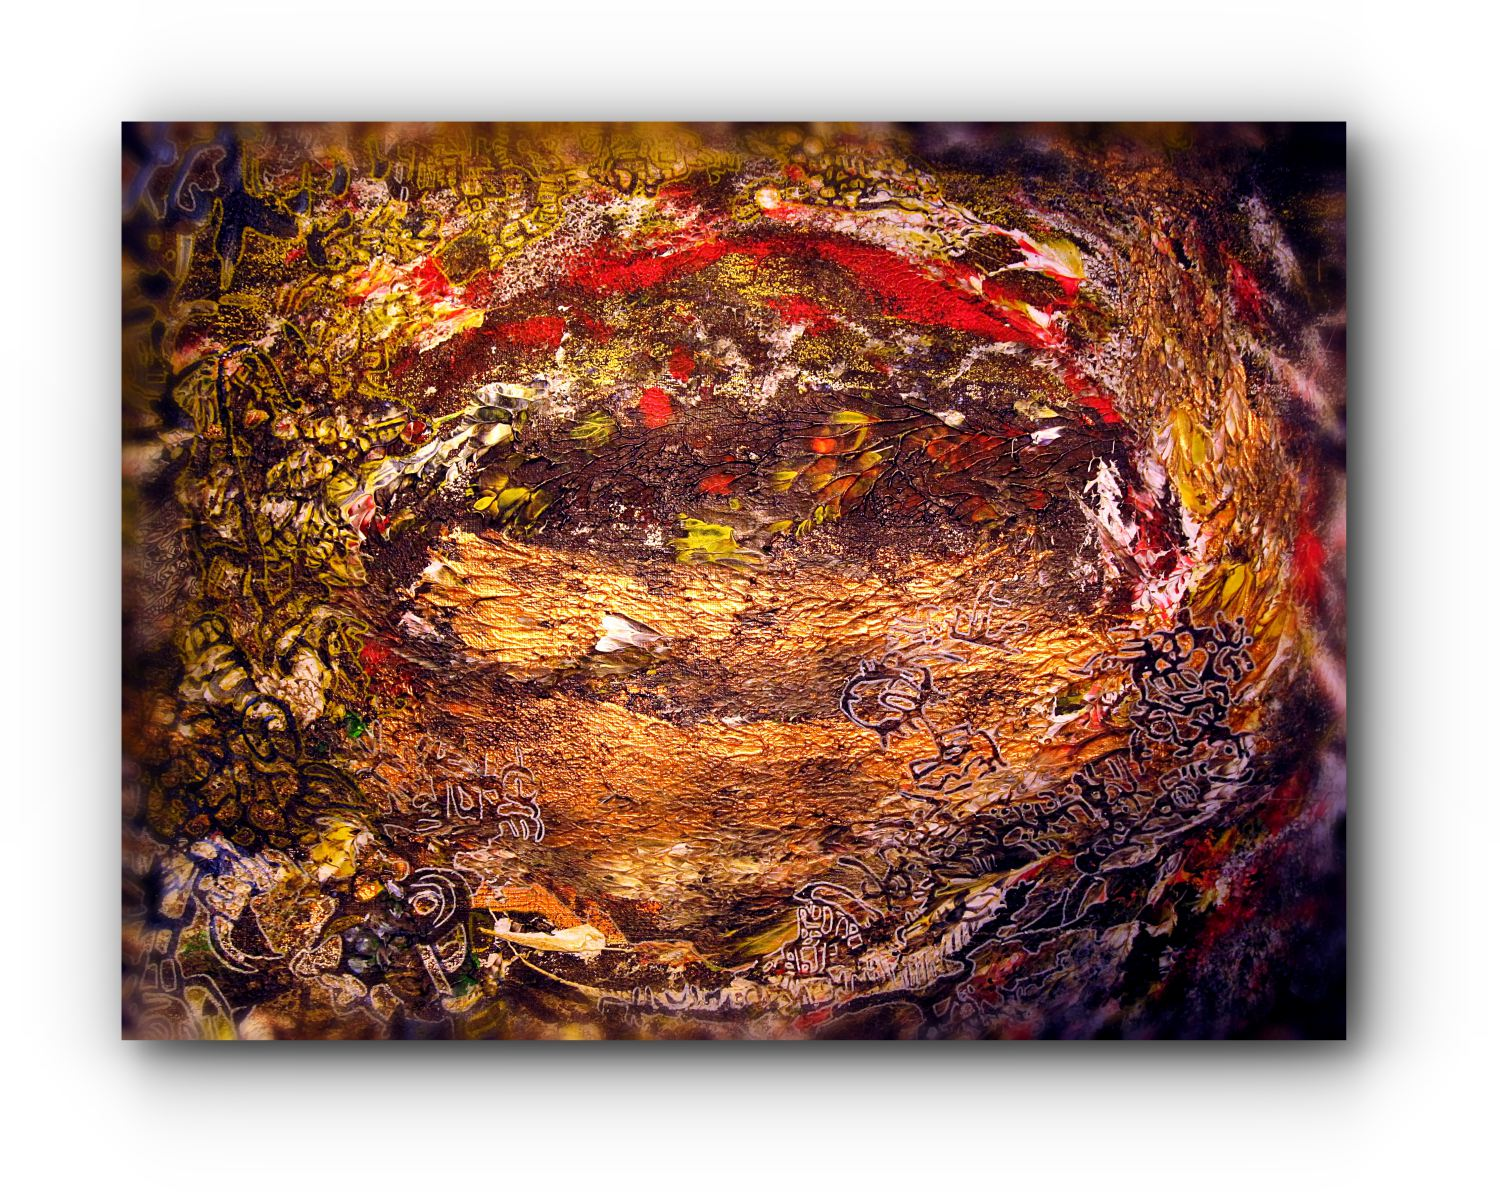 painting-photography-inner-glow-artist-duo-ingress-vortices.jpg